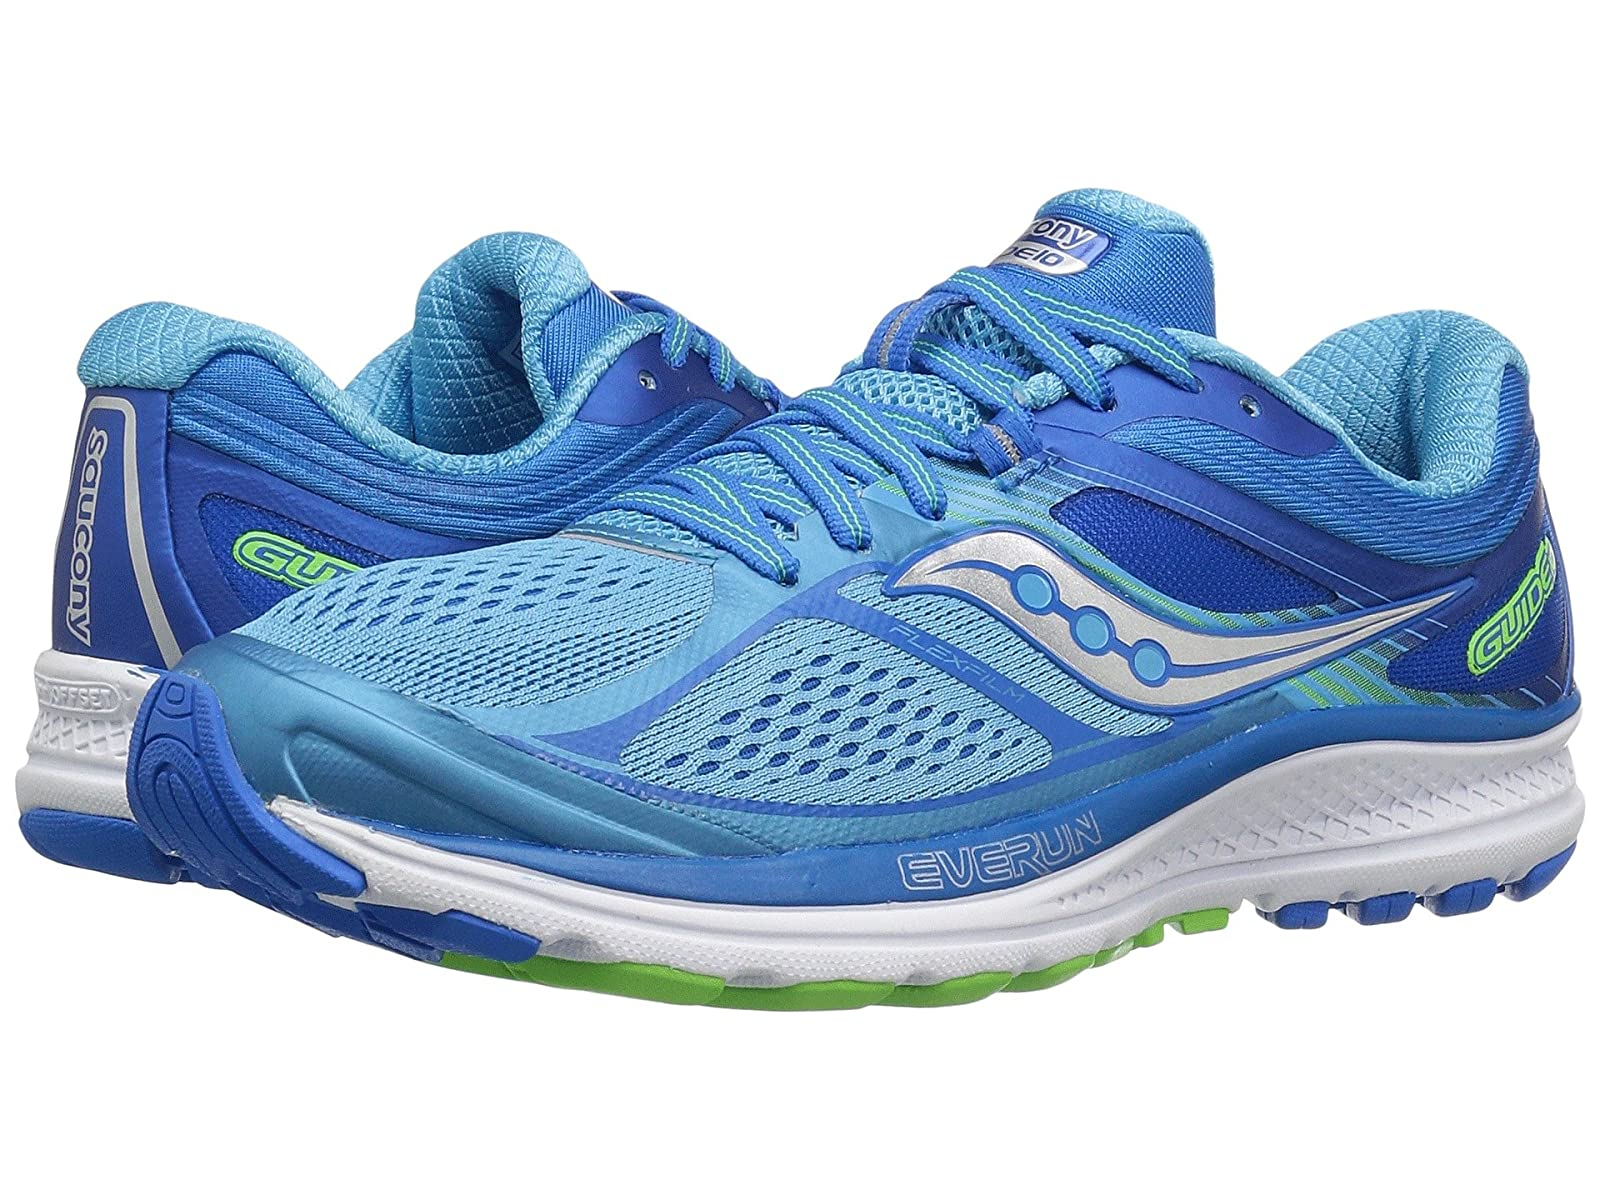 Saucony Guide 10Cheap and distinctive eye-catching shoes